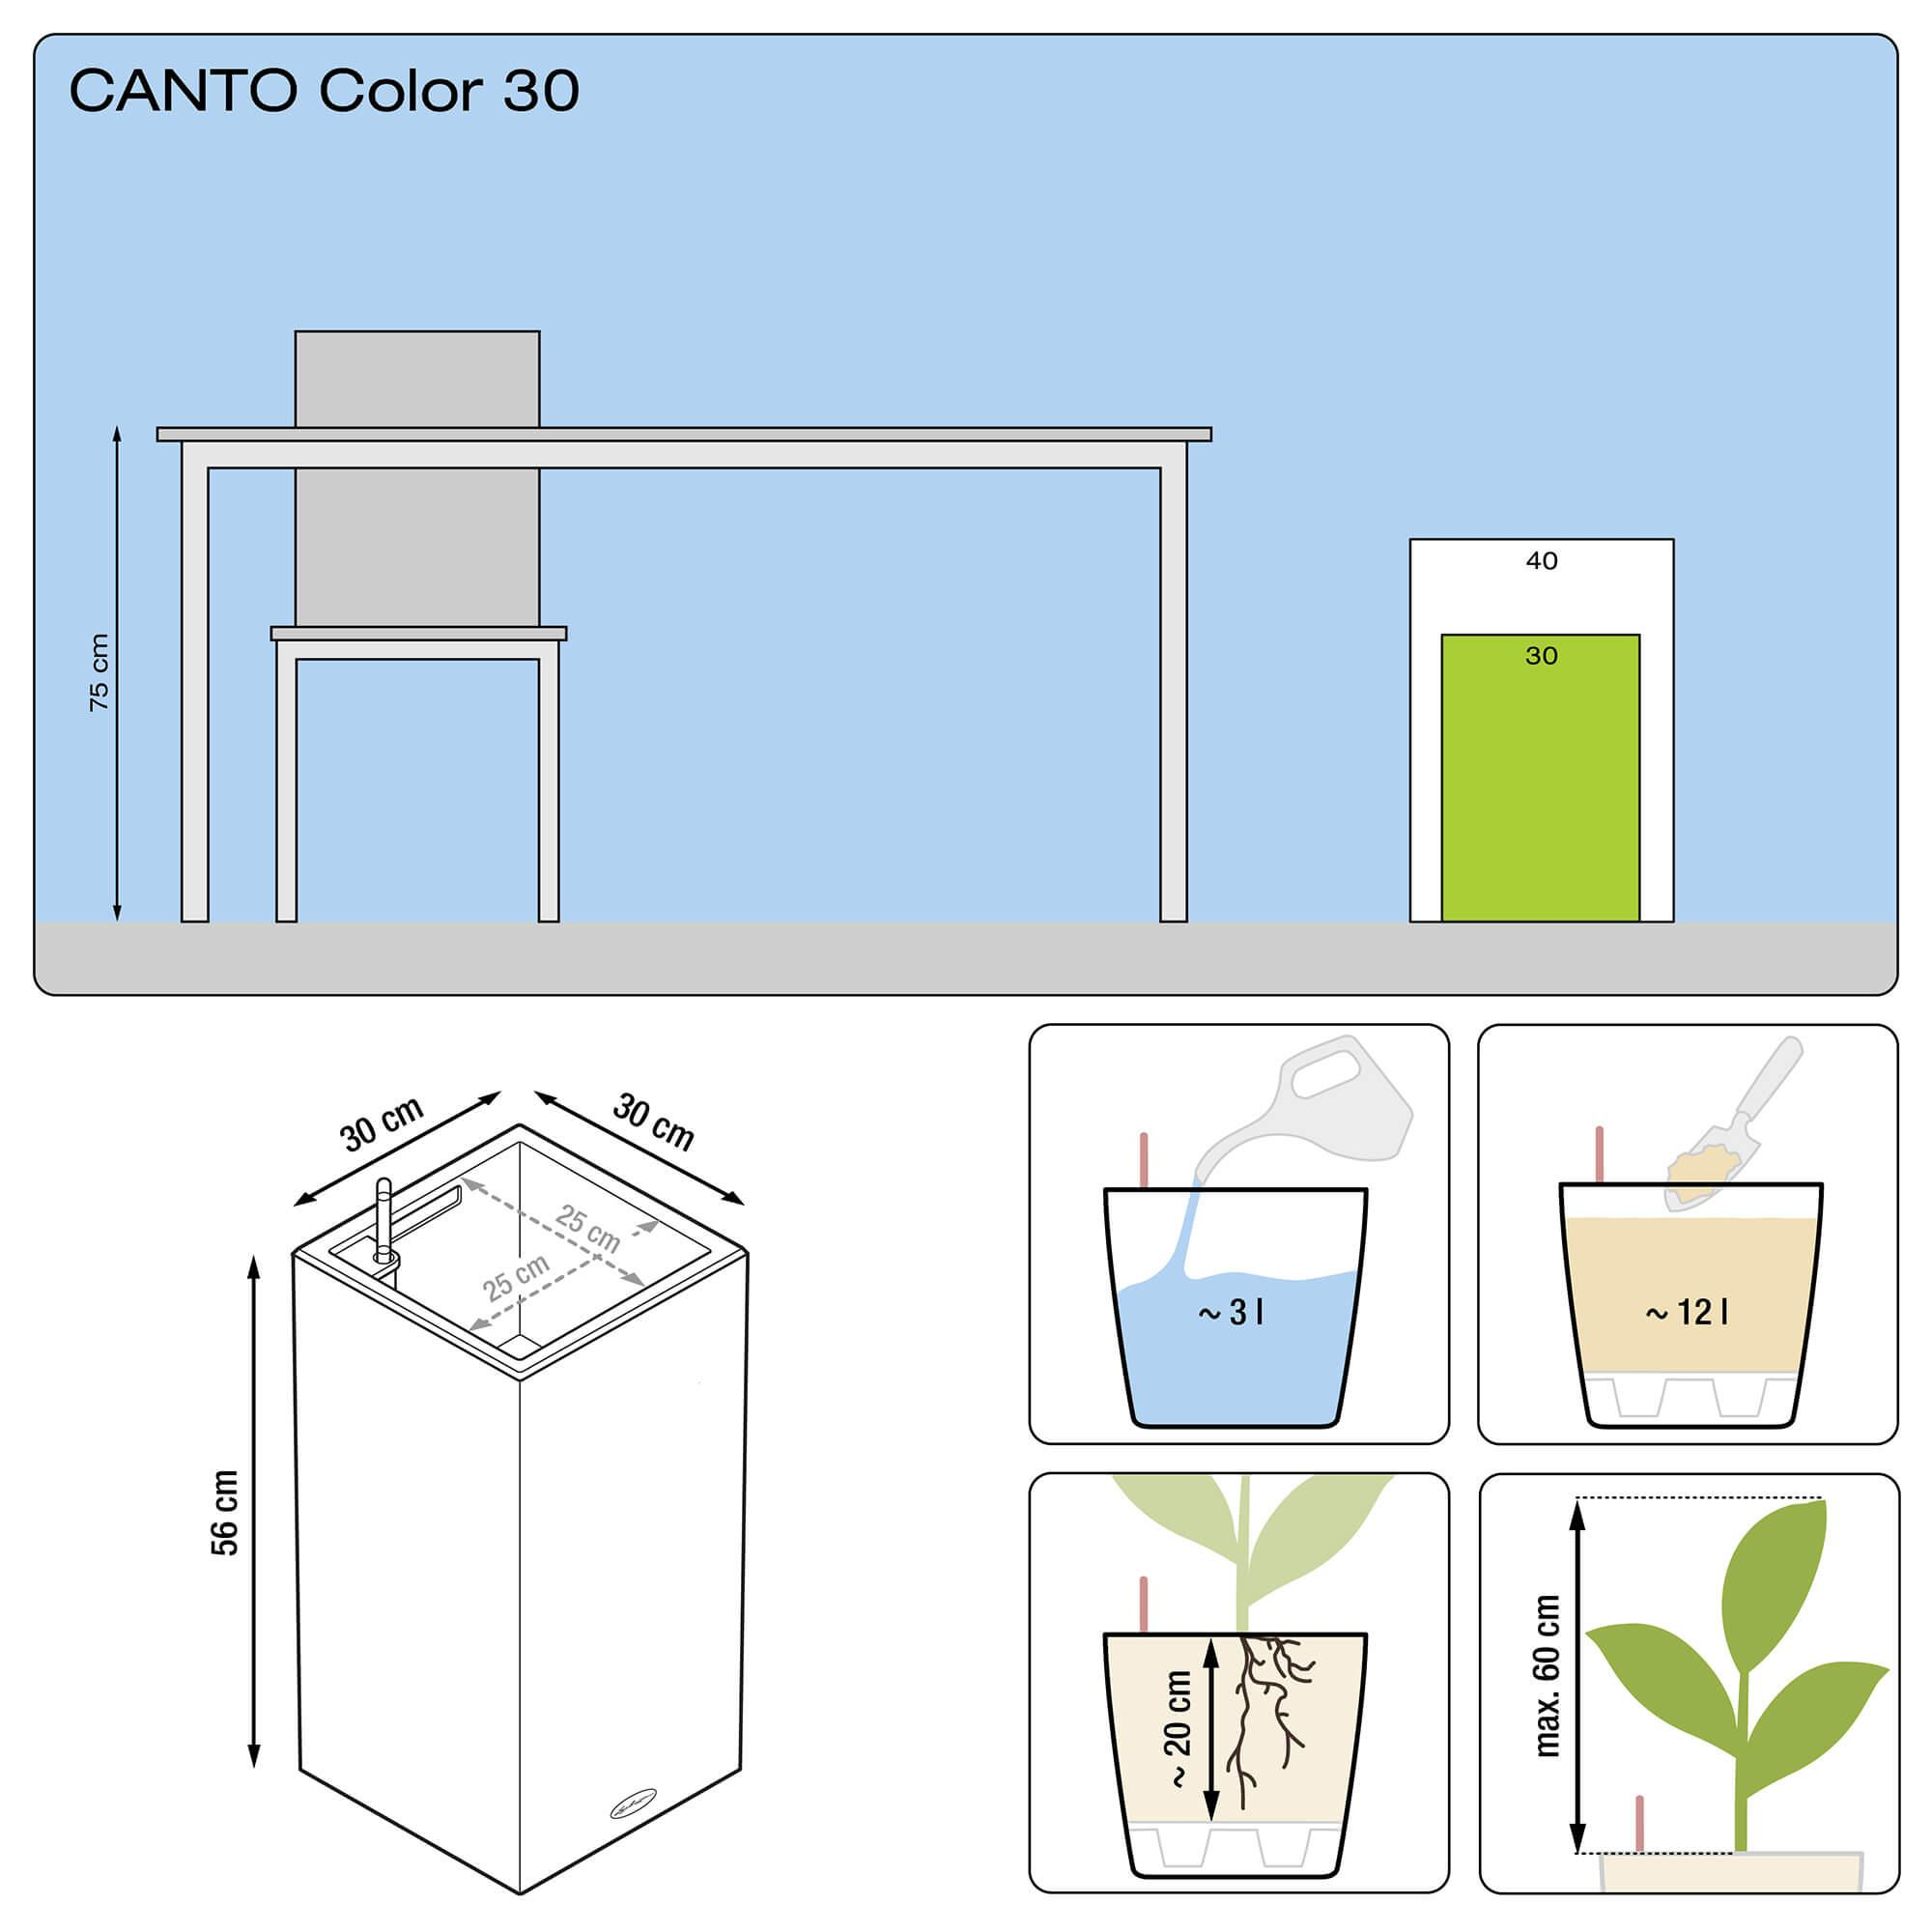 le_canto-color-saeule30_product_addi_nz